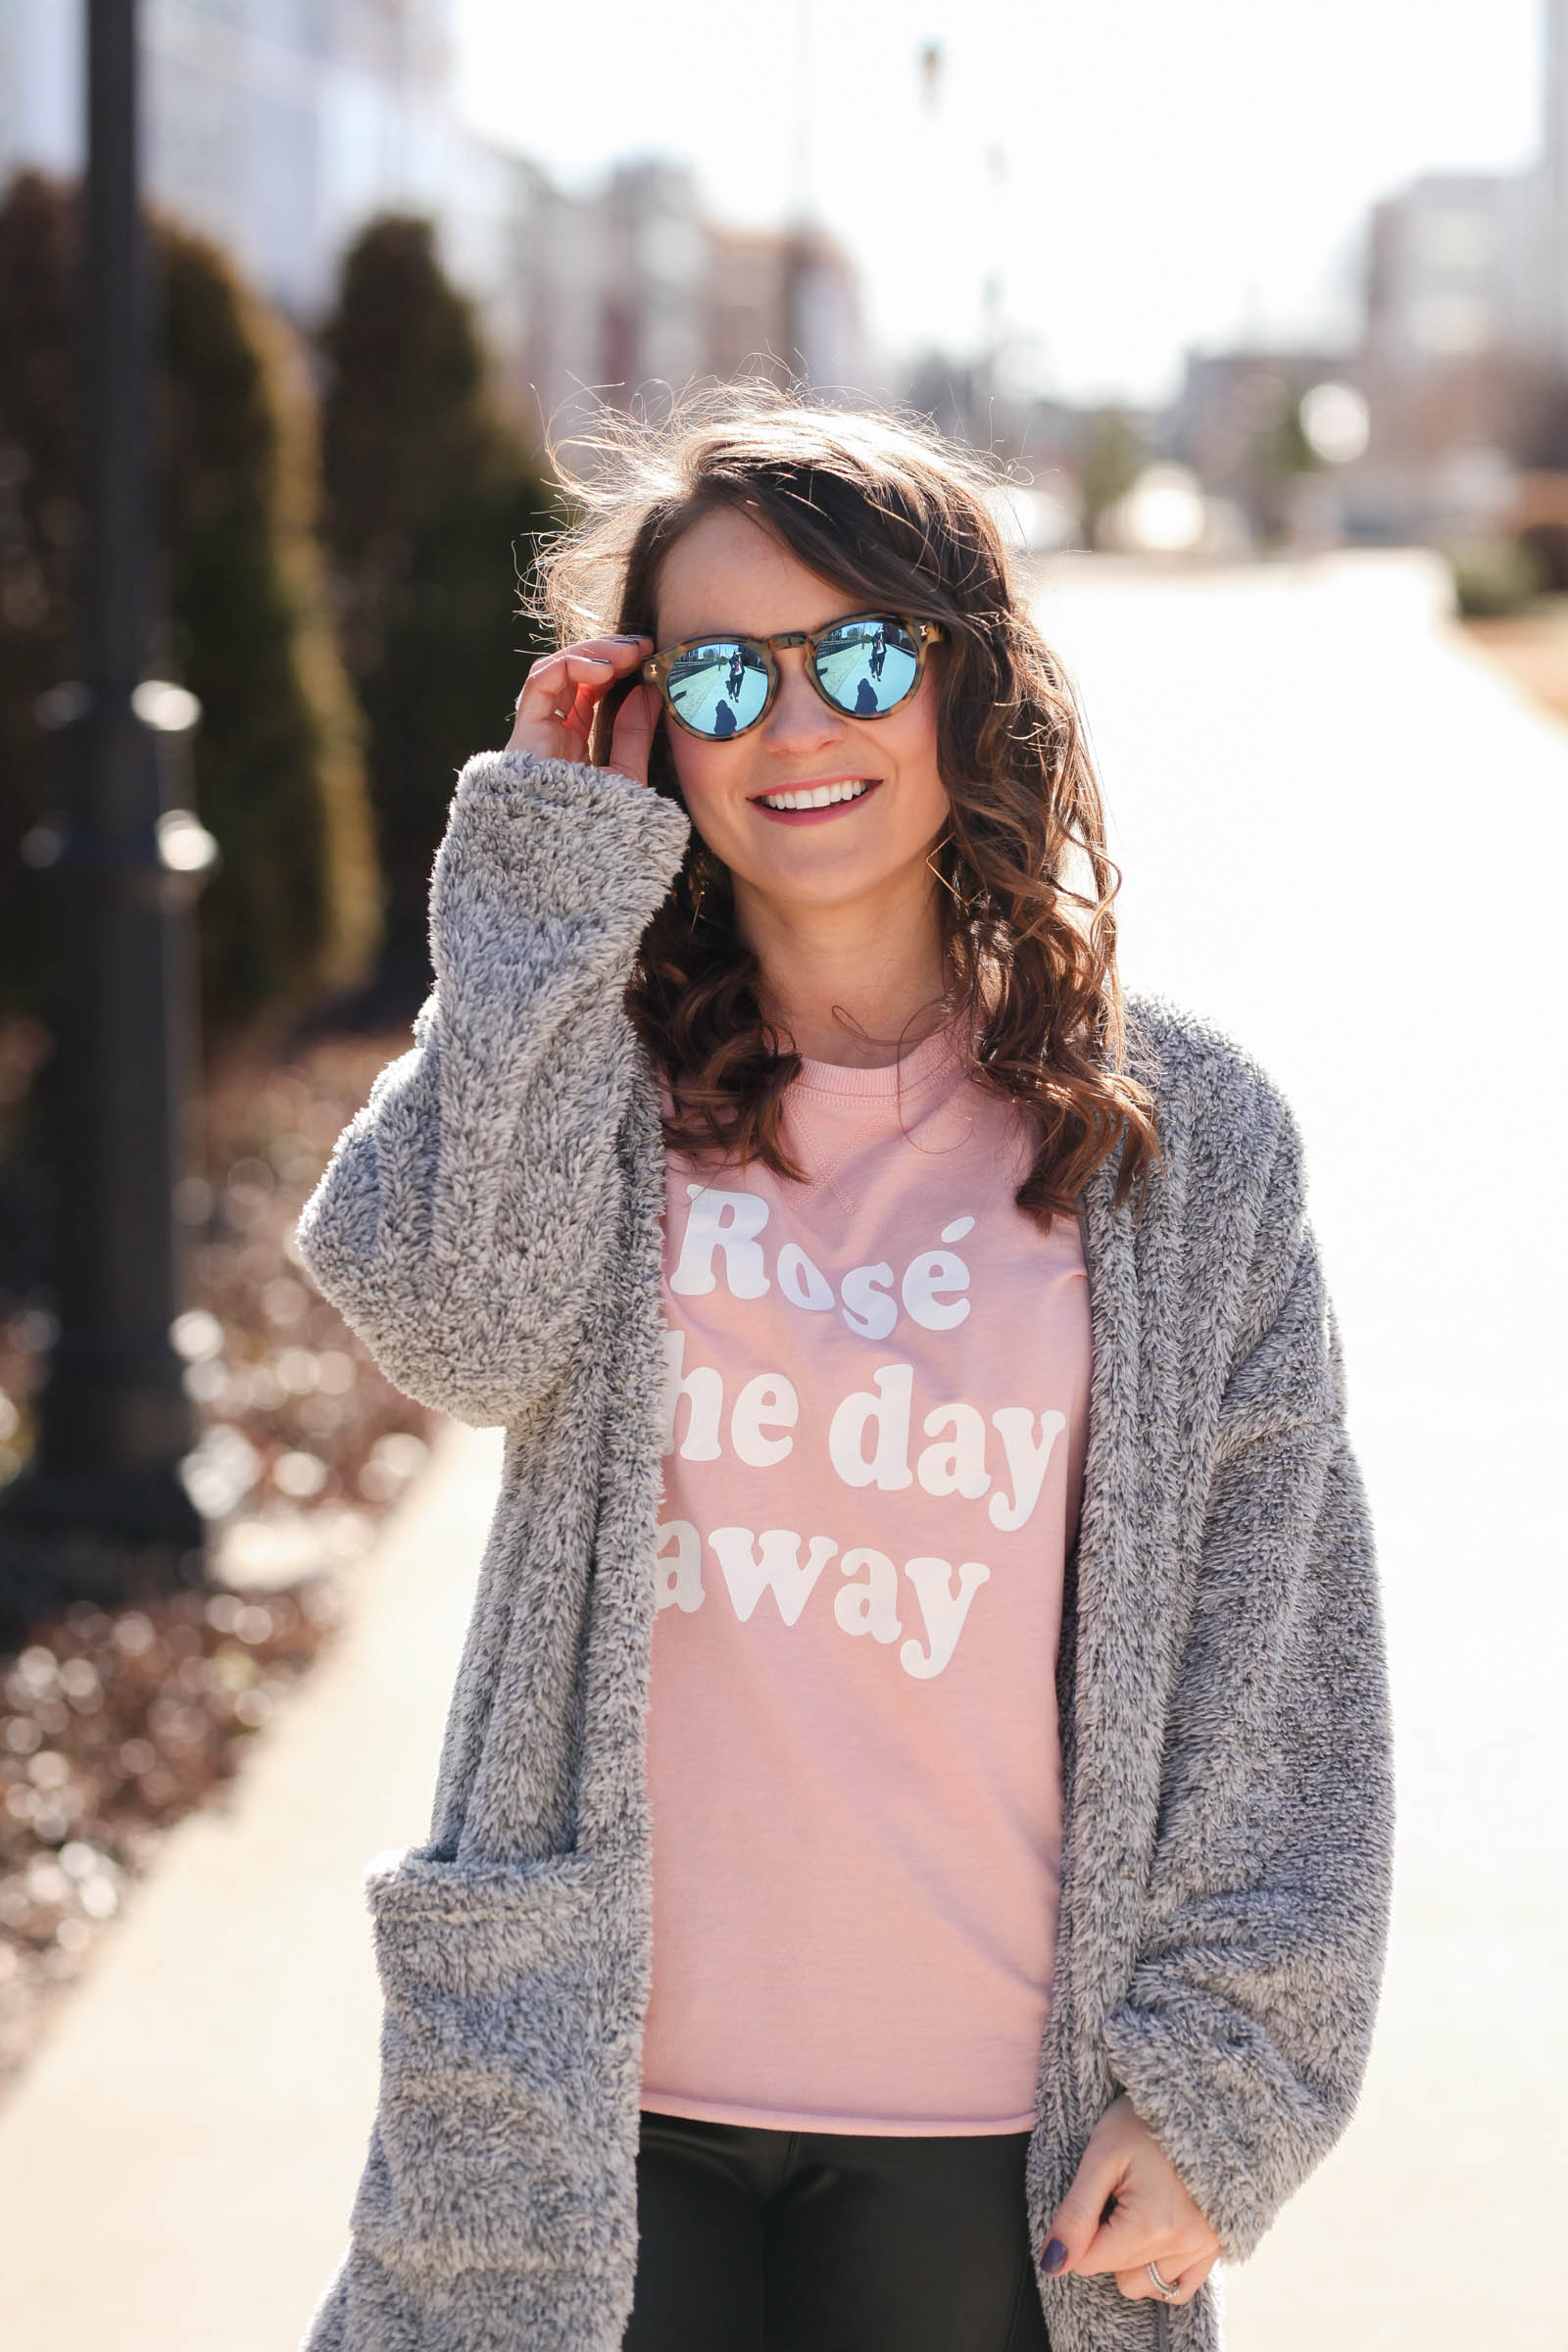 rose the day away tee